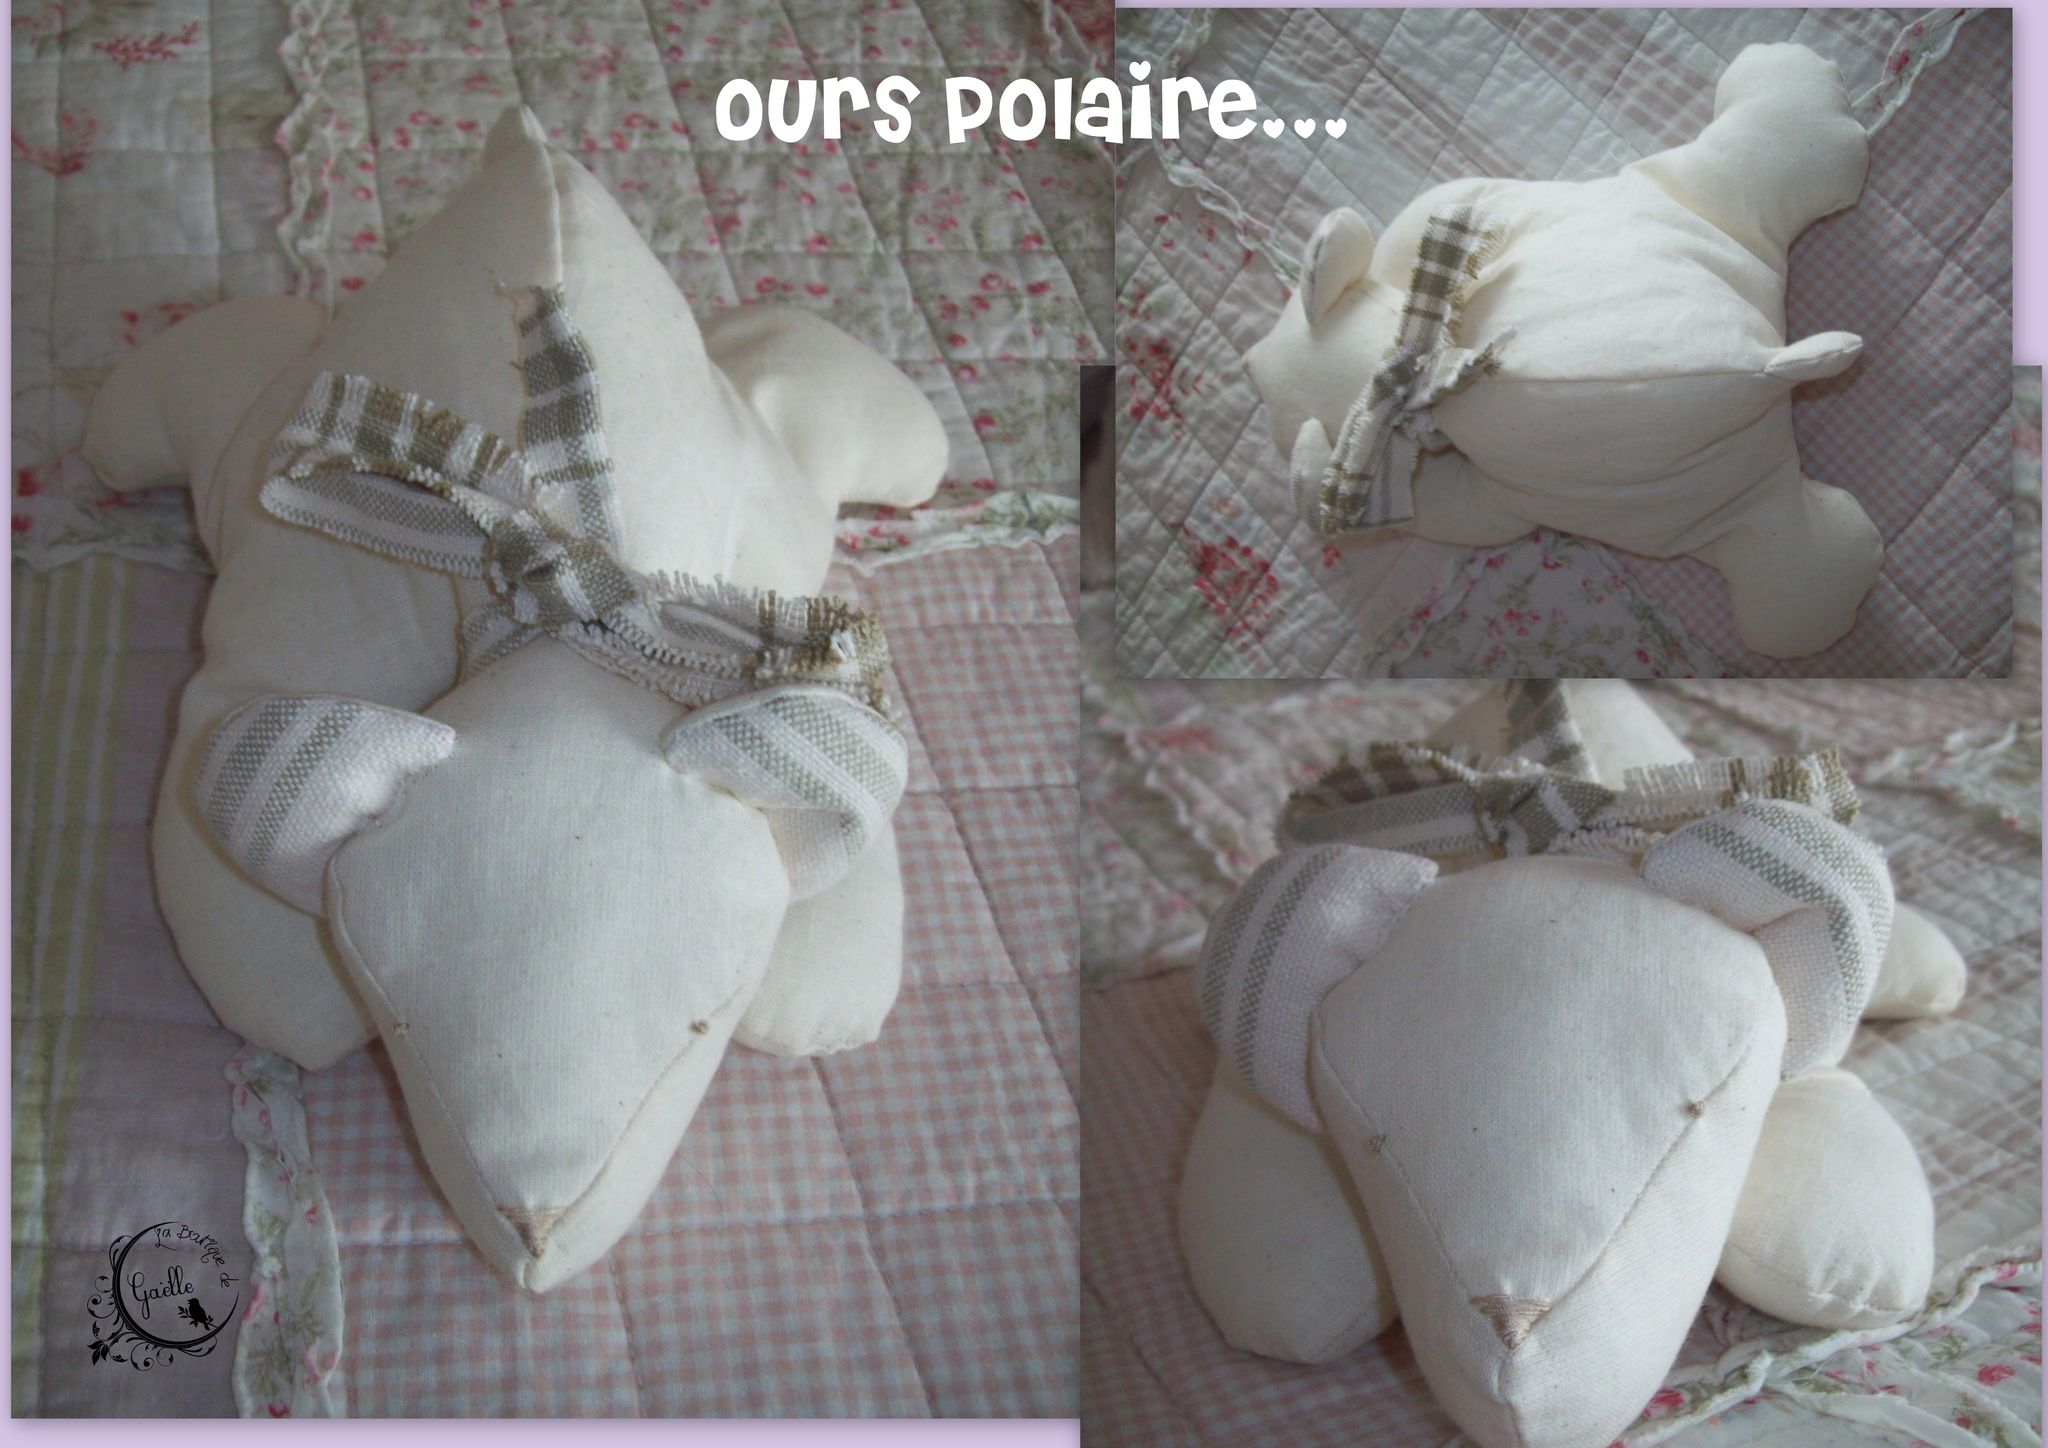 Ours polaire...